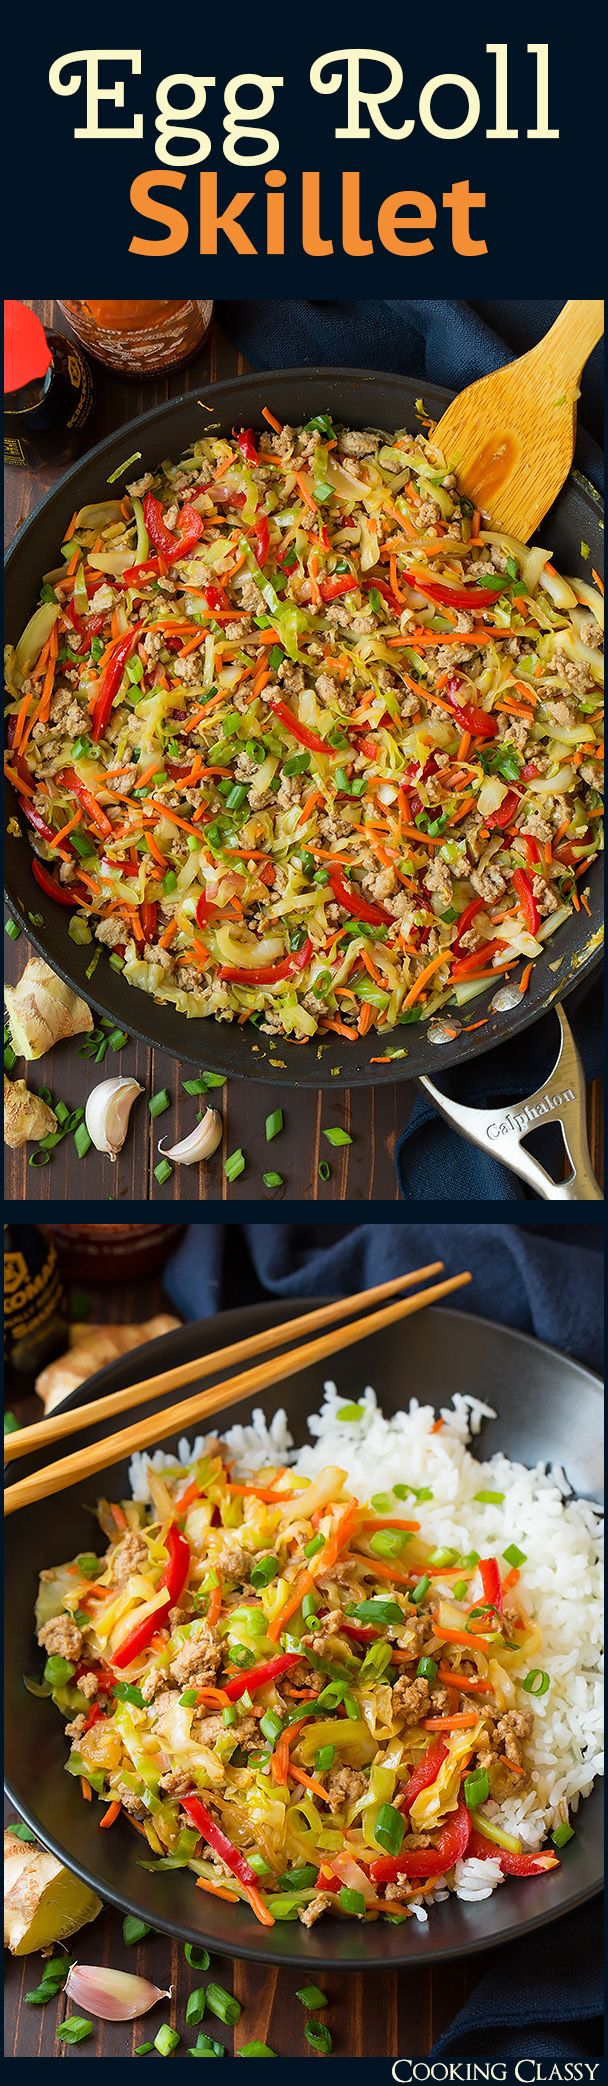 Egg Roll Skillet - All the goodness of an egg roll without all the hassle…